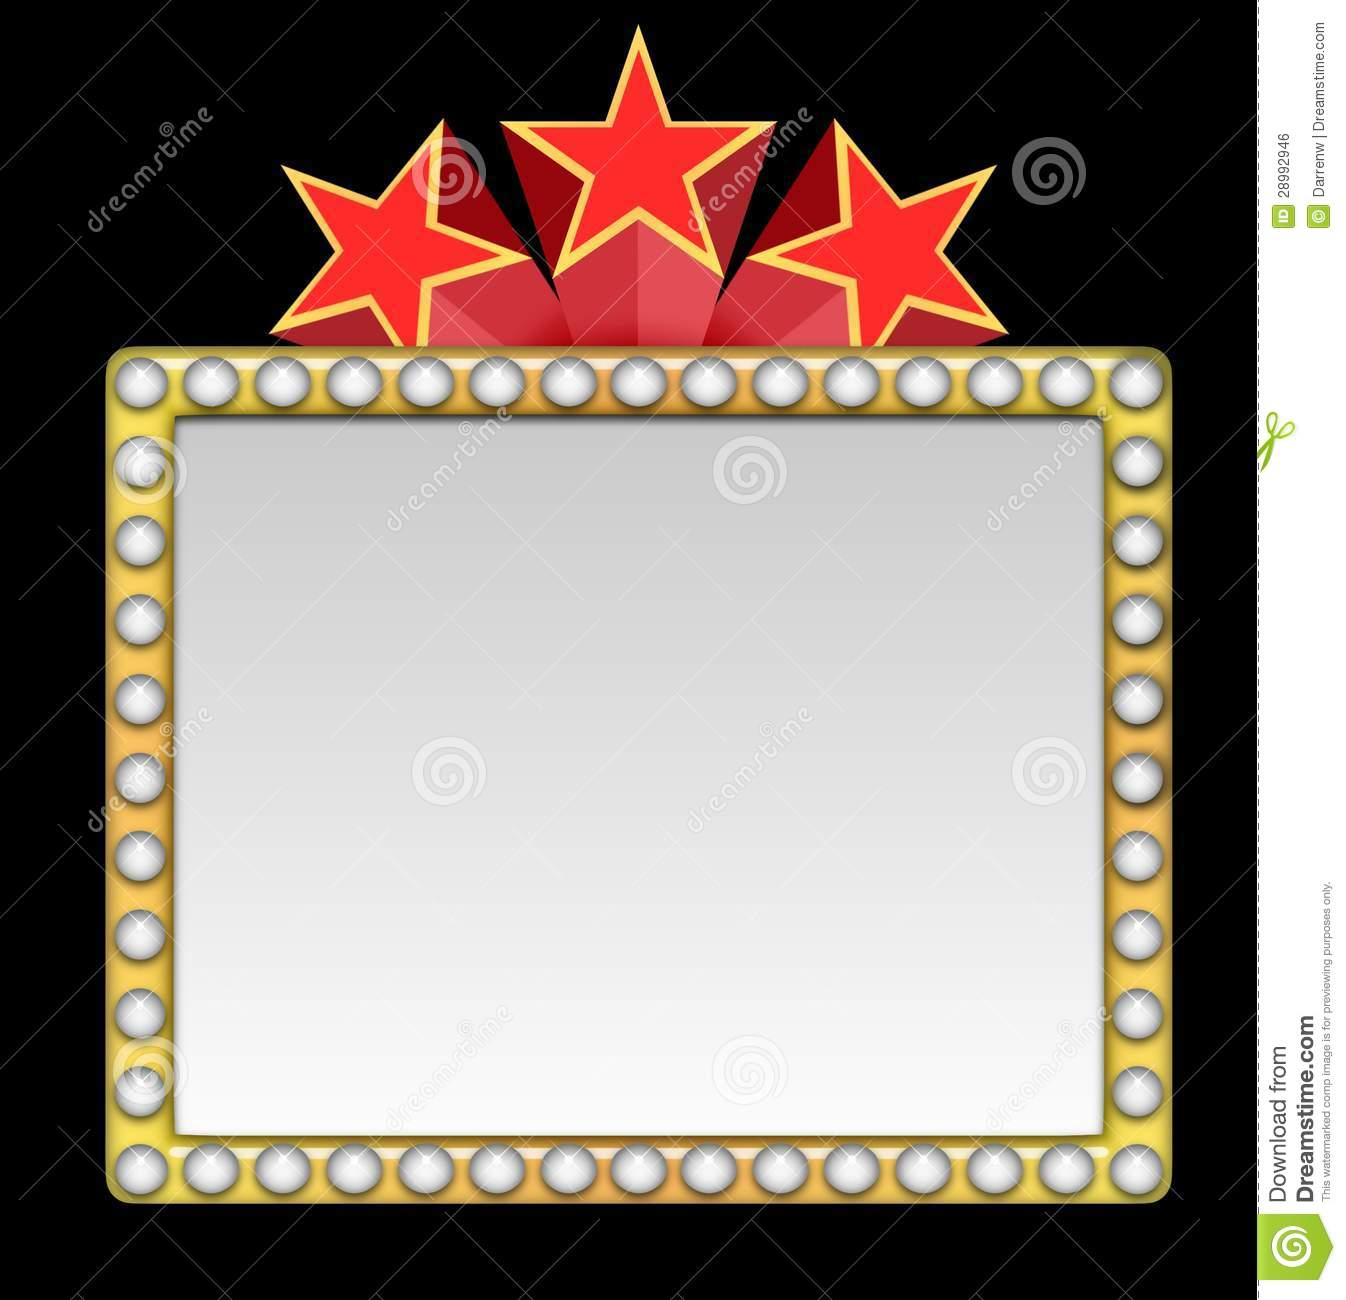 Free Hollywood Border Cliparts, Download Free Clip Art, Free.